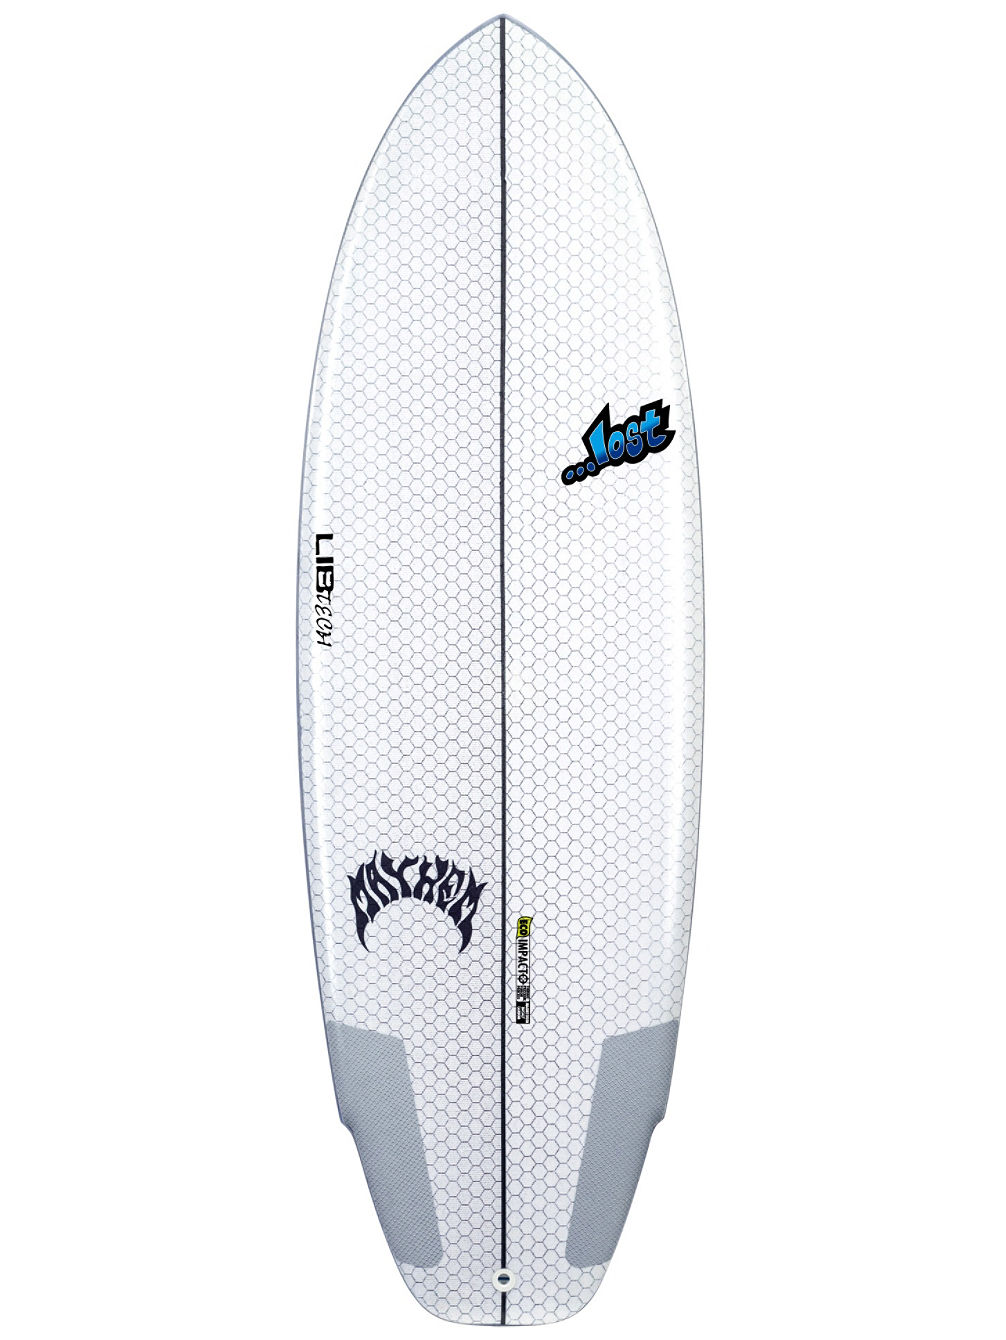 X Lost Puddle Jumper 5'9 Surfboard